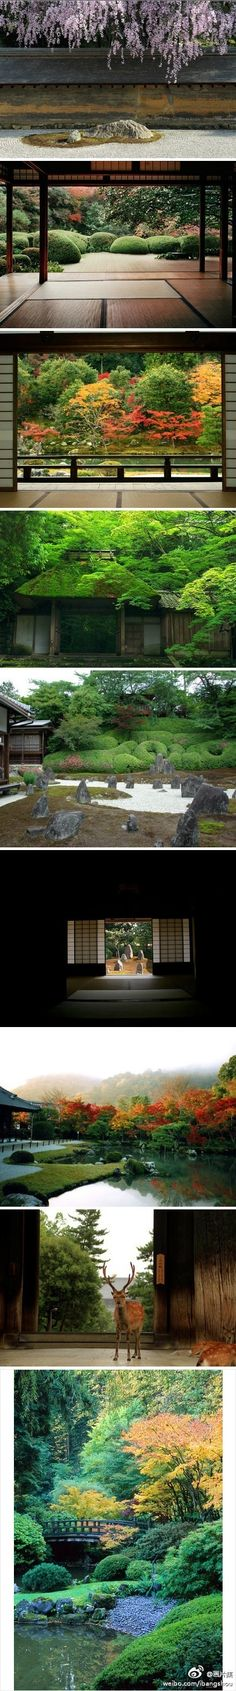 ~日本庭園,极富禅韵。Japanese garden | House of Beccaria